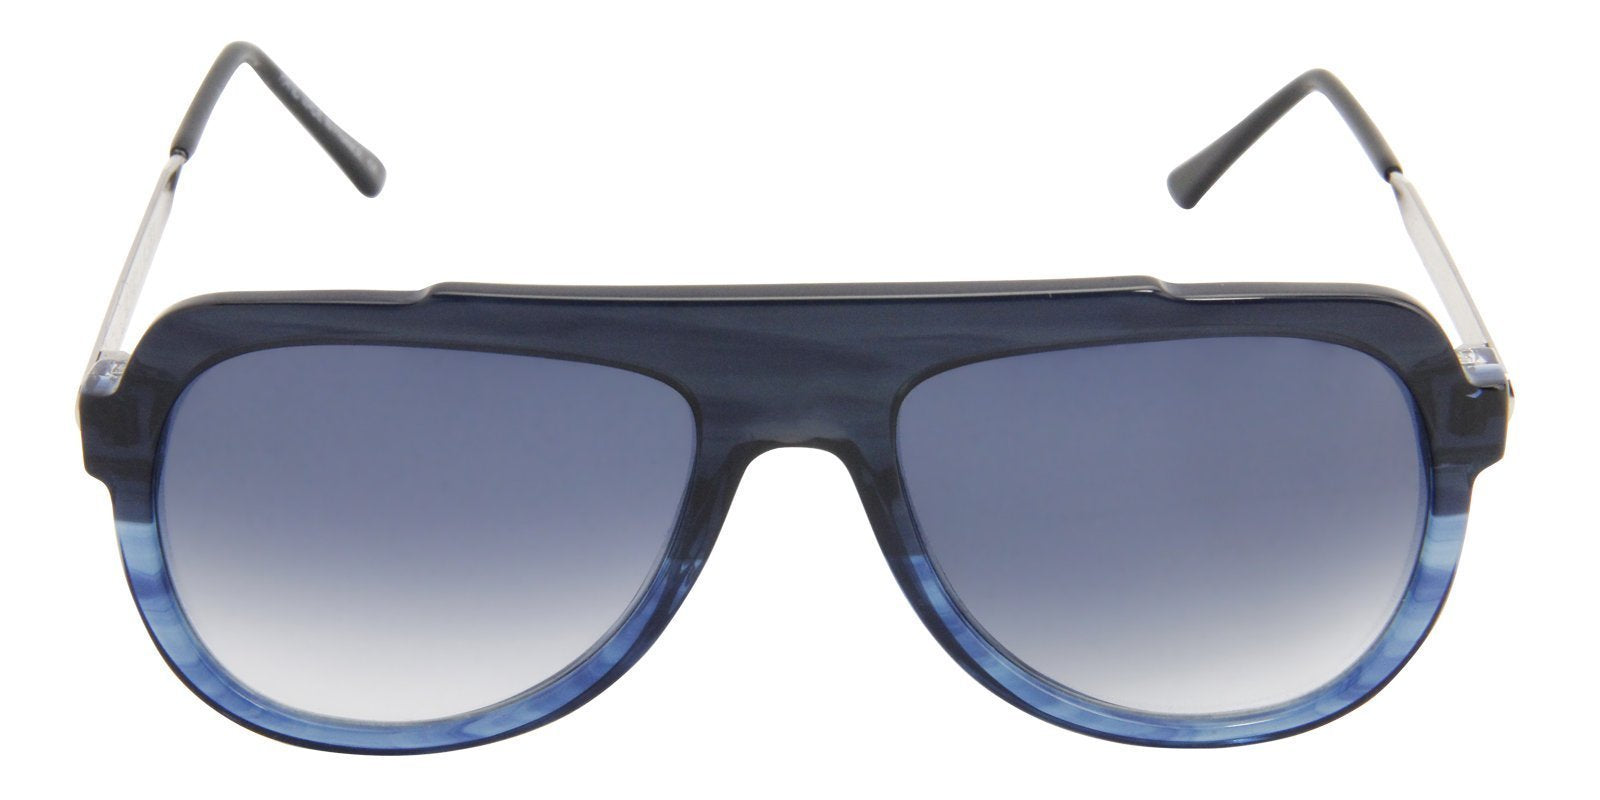 Thierry Lasry - Staminy Blue Aviator Men, Women Sunglasses - 58mm-Sunglasses-Designer Eyes